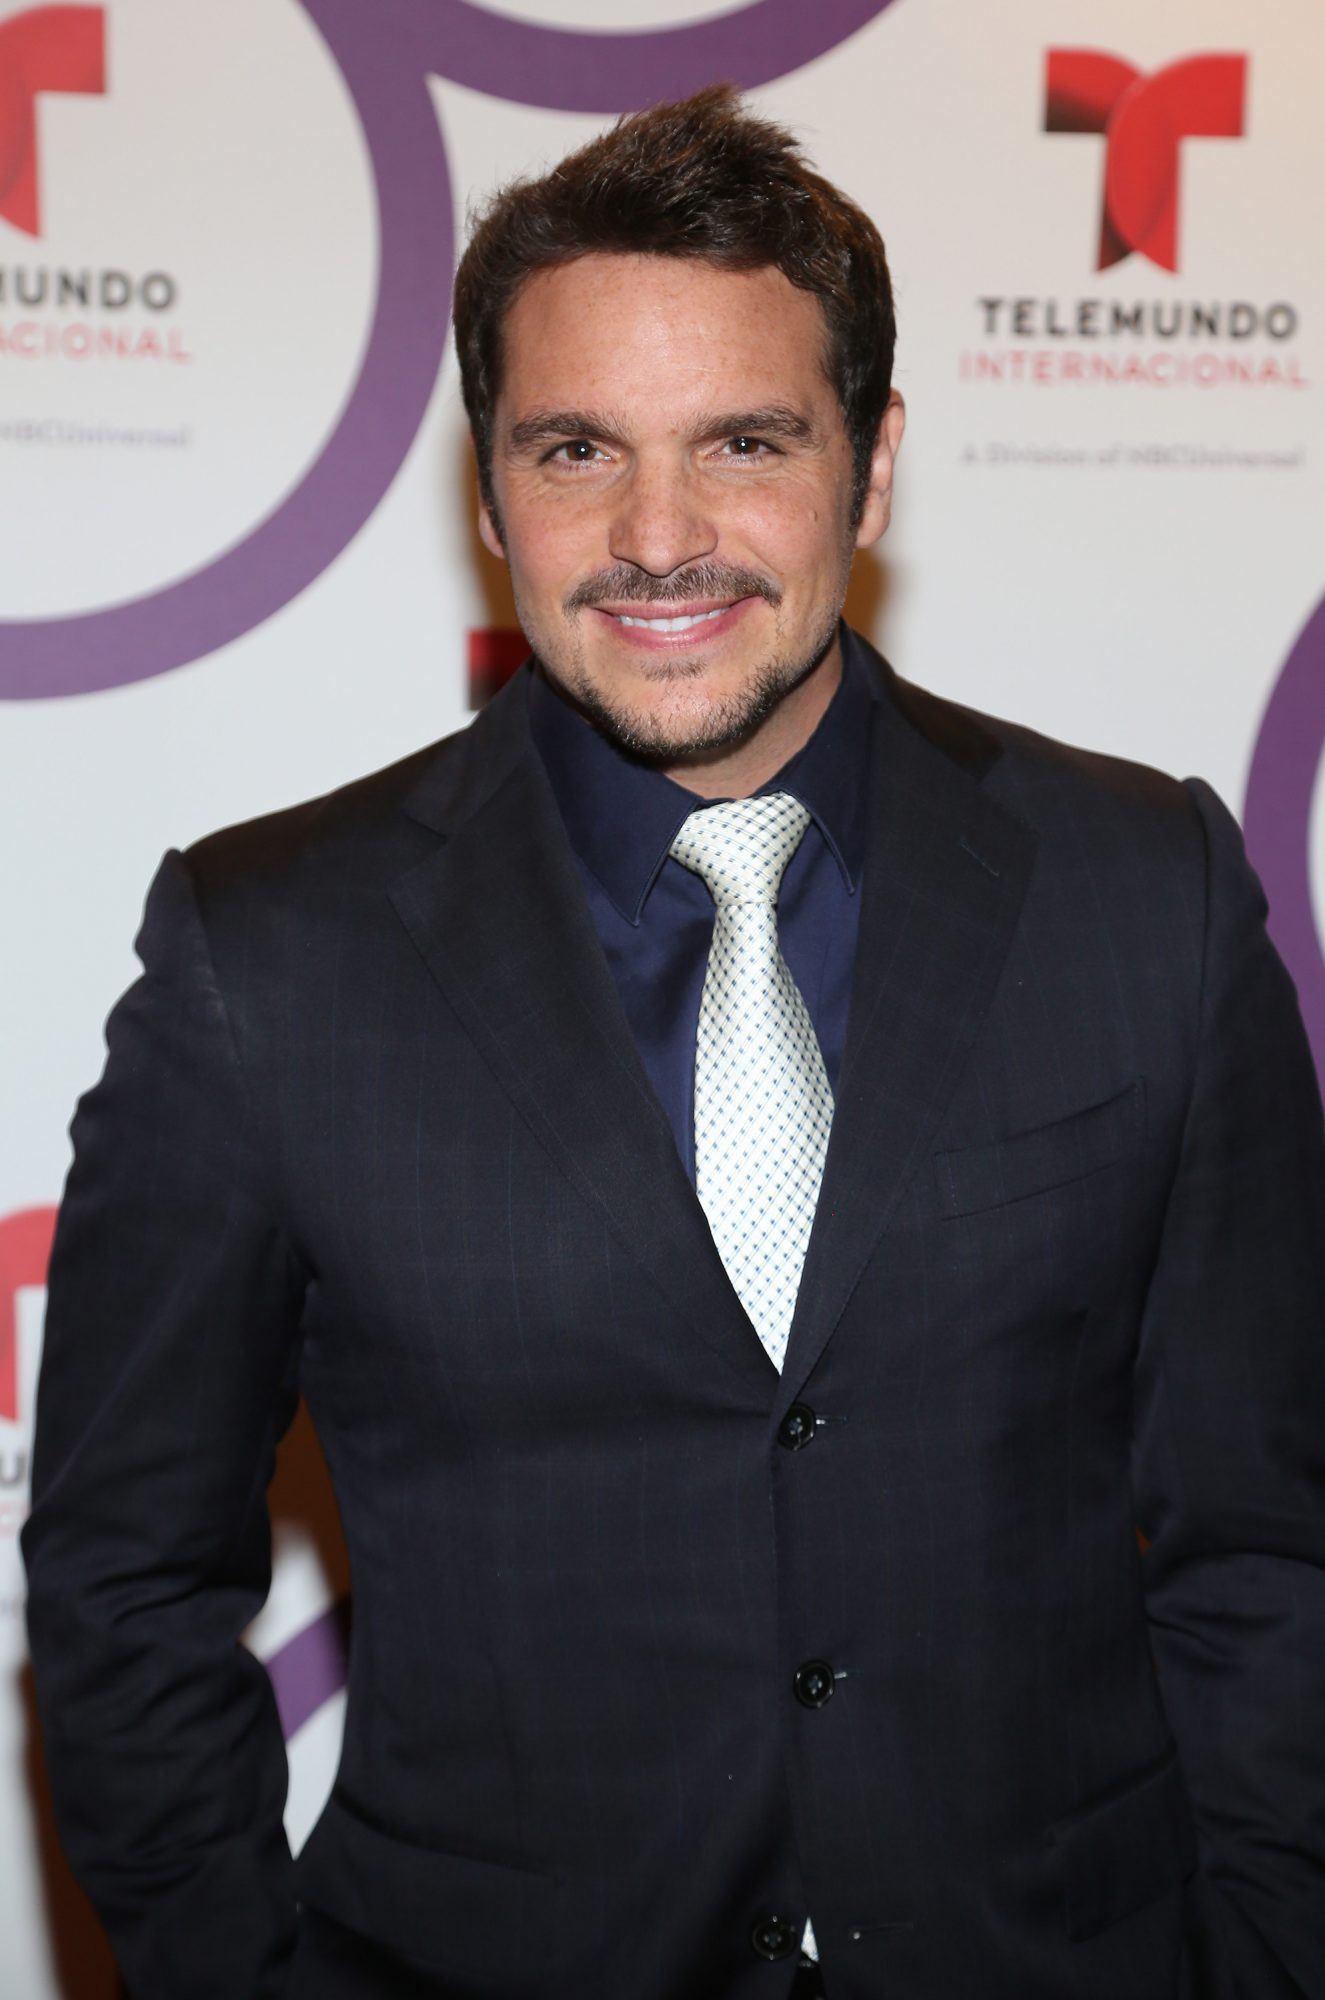 NATPE 2015 - Telemundo International Red Carpet Event